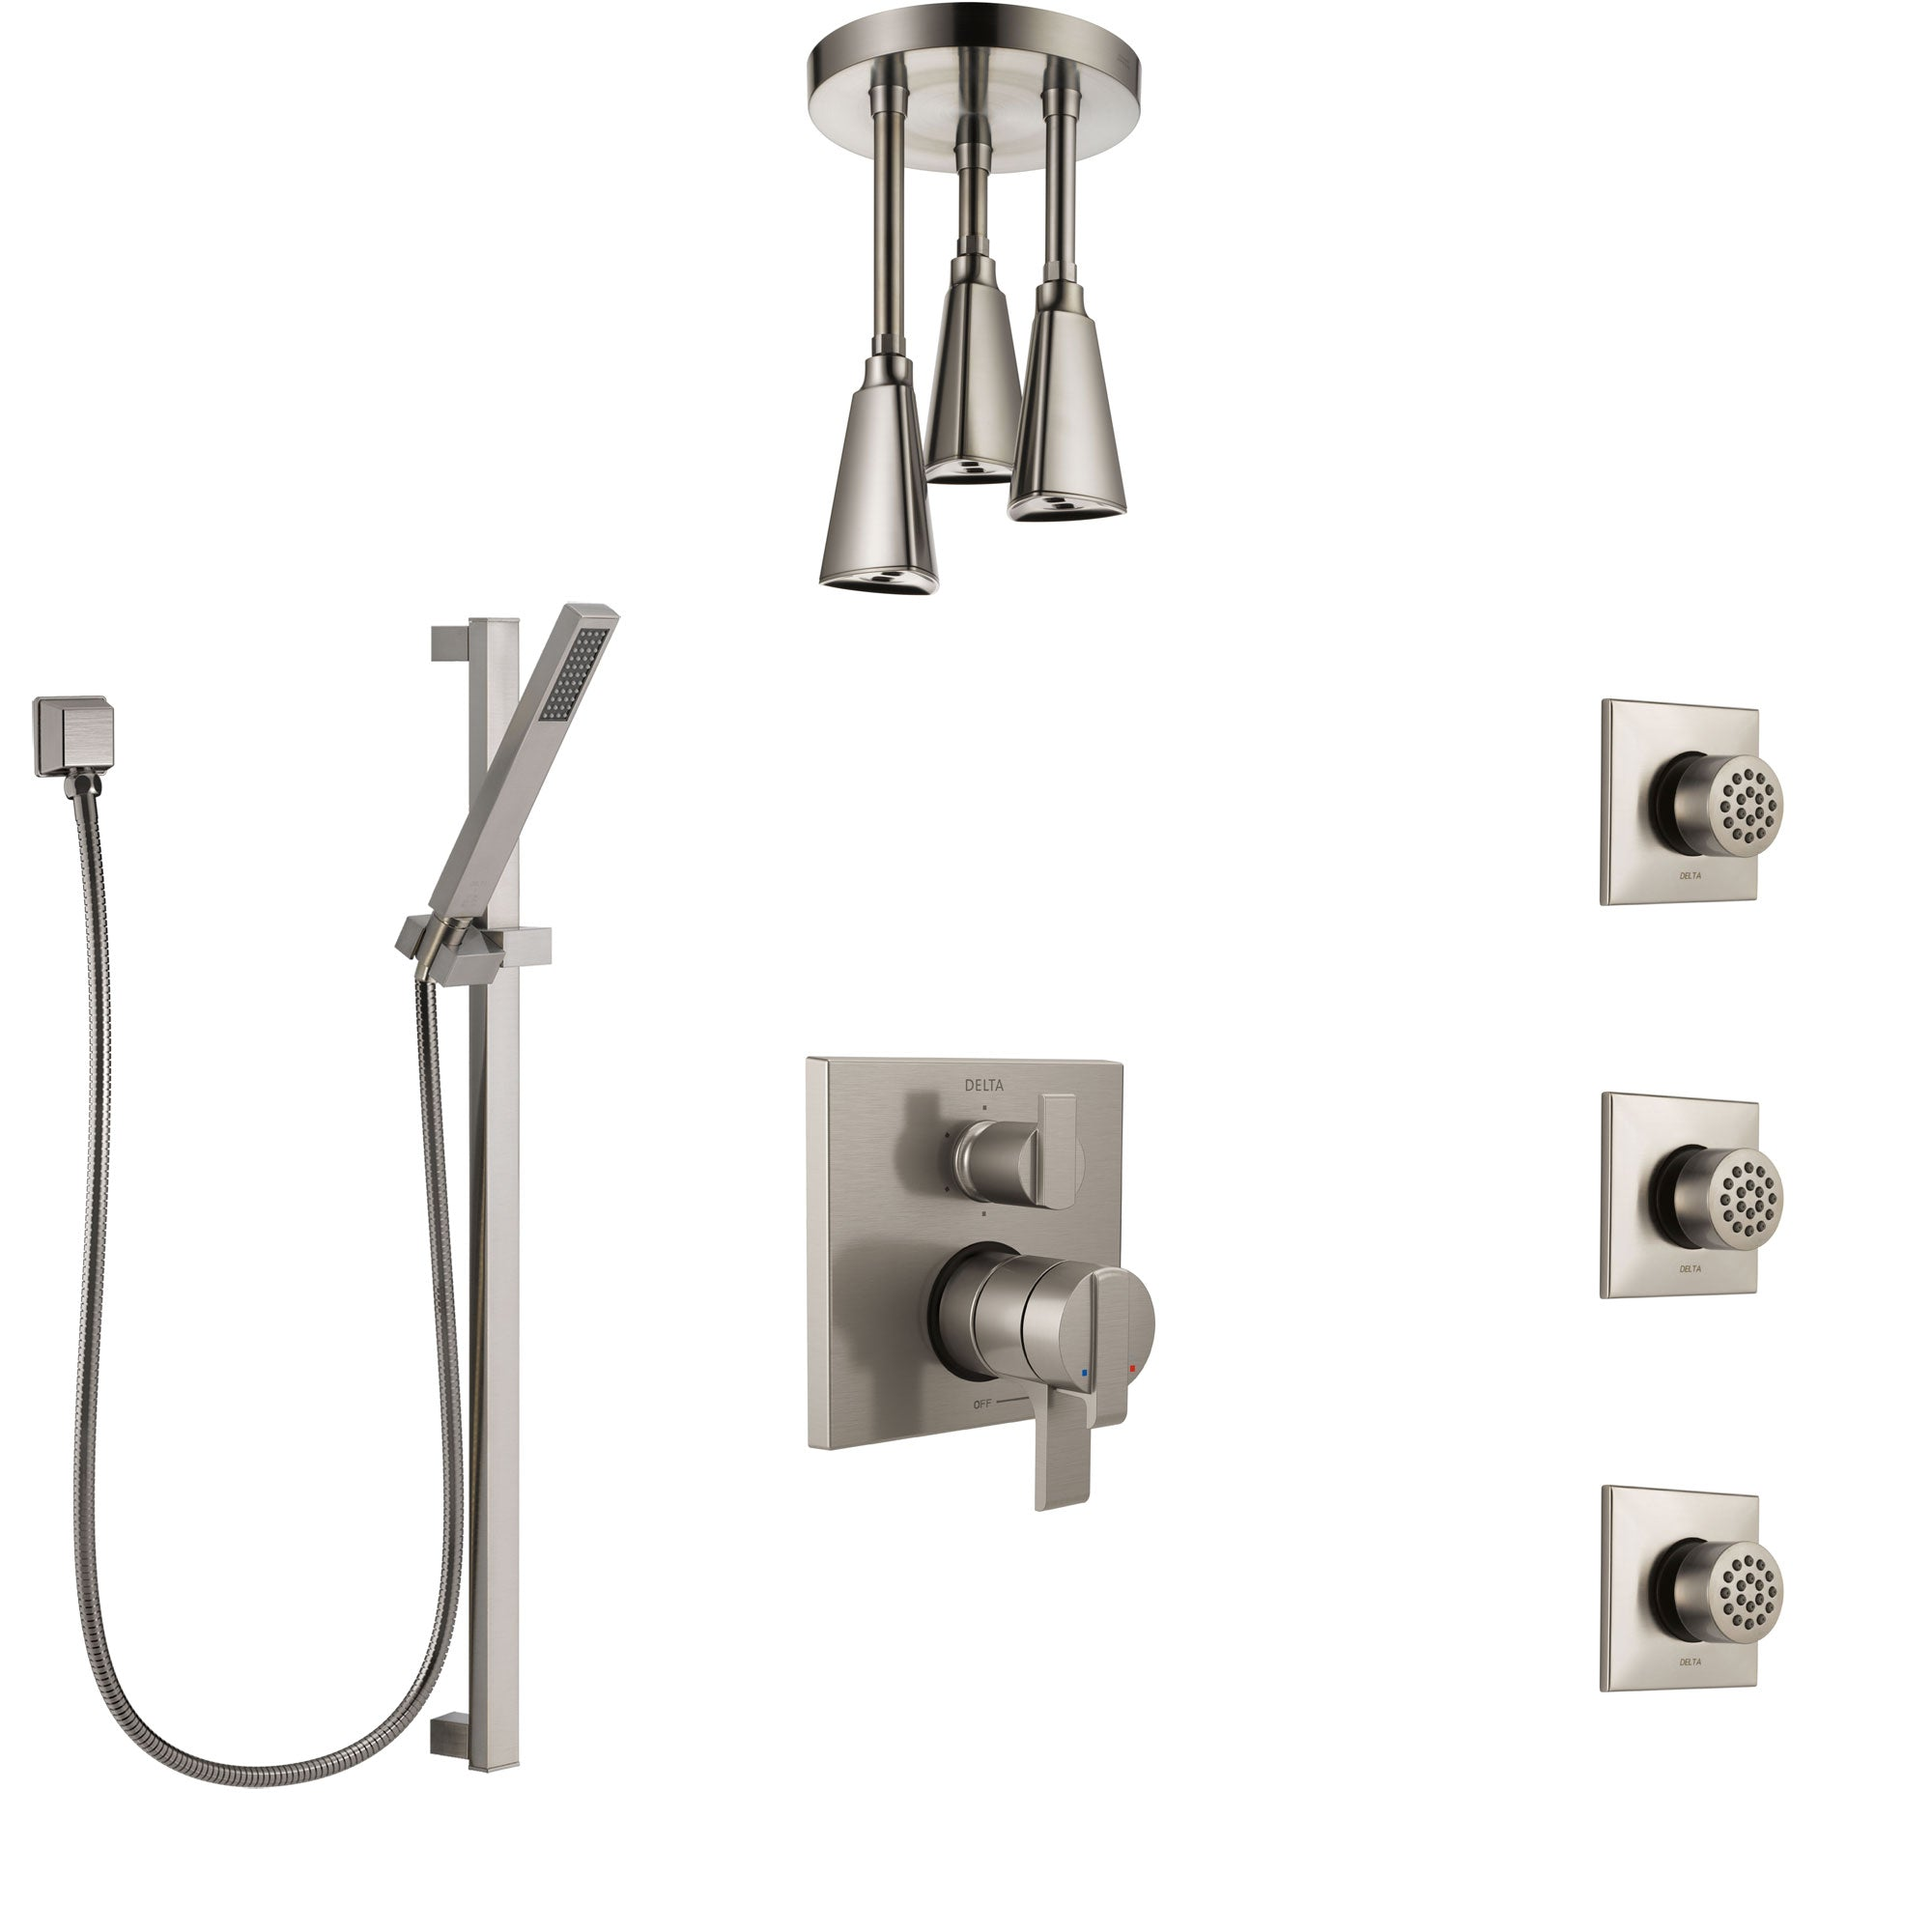 Delta Ara Dual Control Handle Stainless Steel Finish Shower System, Integrated Diverter, Ceiling Showerhead, 3 Body Sprays, and Hand Shower SS27967SS7